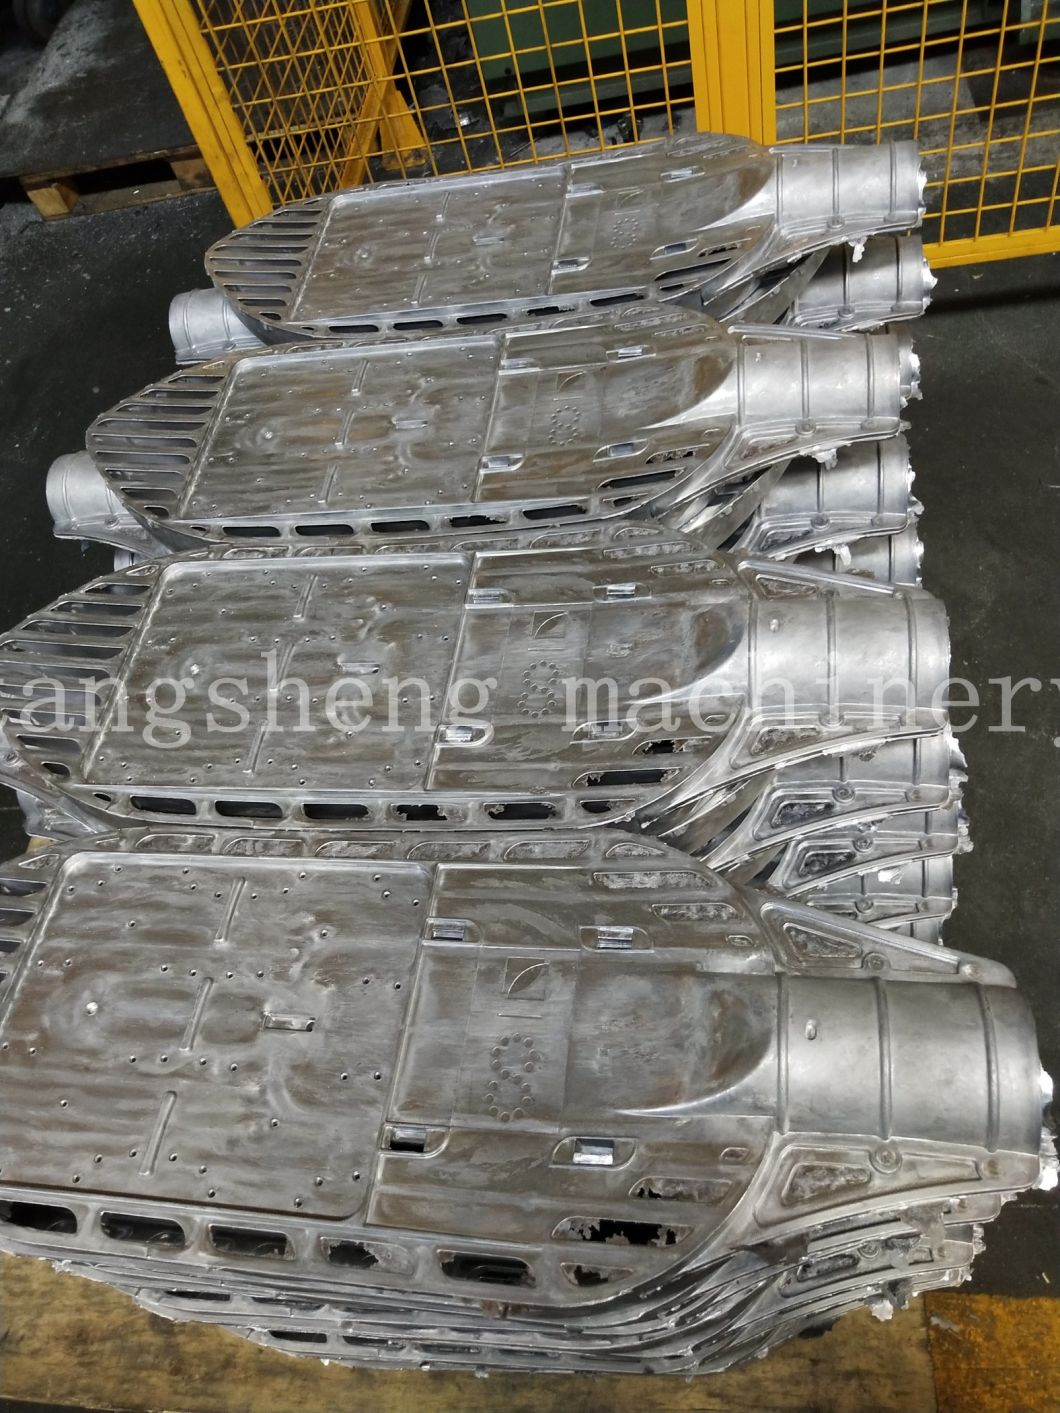 Supply Vacuum Pumping Aluminum Die-Casting Baking Tray and Open Die-Casting Mold, Aluminum Pan of Various Sizes